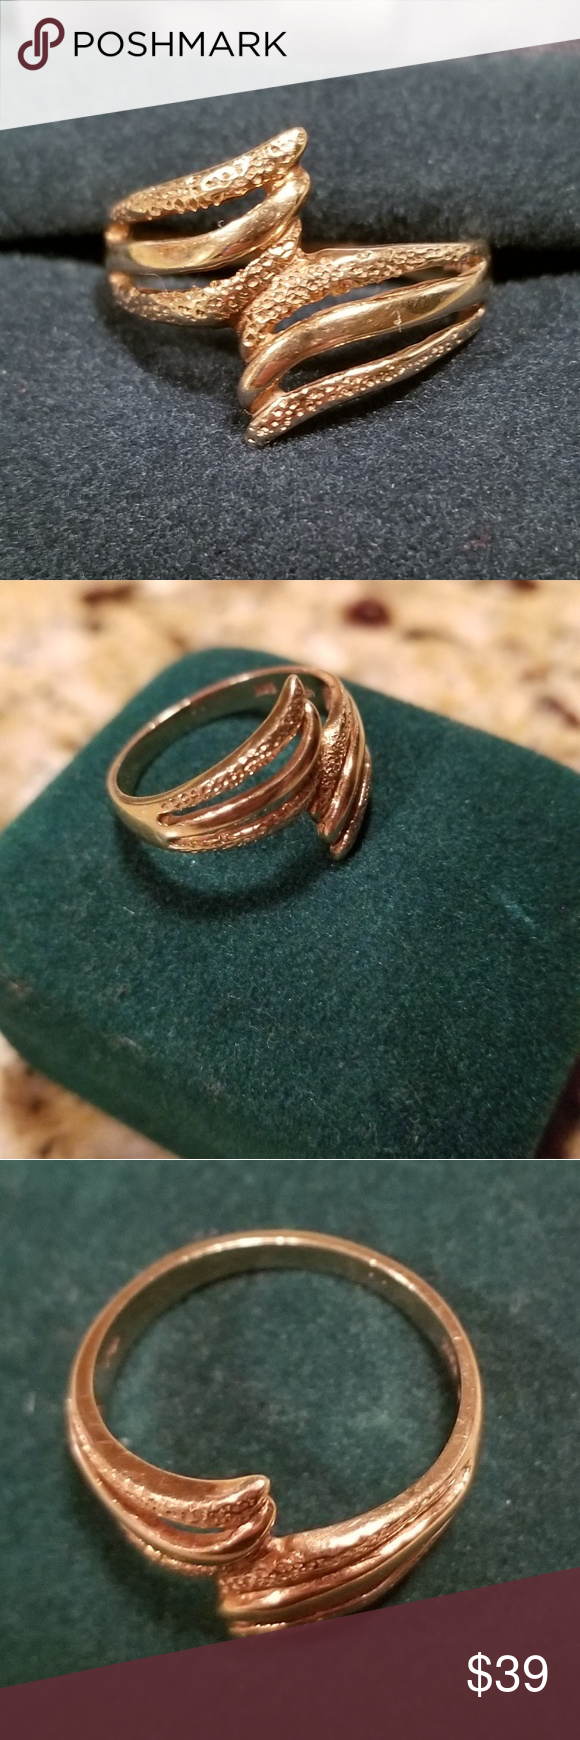 Beautiful 14 Karat Gold Ring Gold Rings 14 Karat Gold Karat